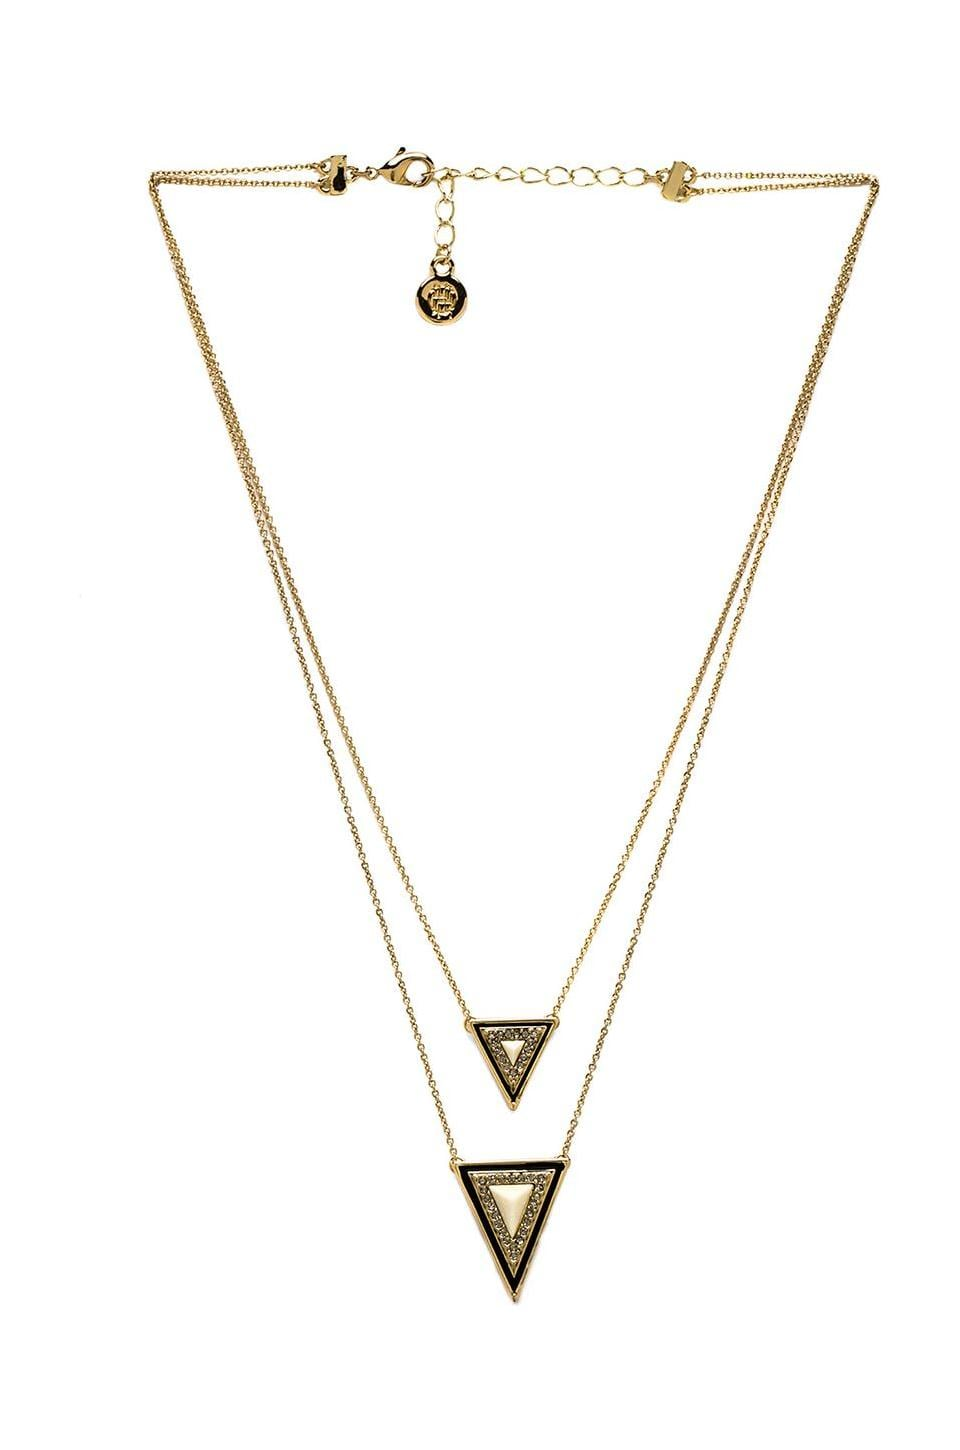 House of Harlow 1960 House of Harlow Teepee Triangle Necklace in Gold & Ivory